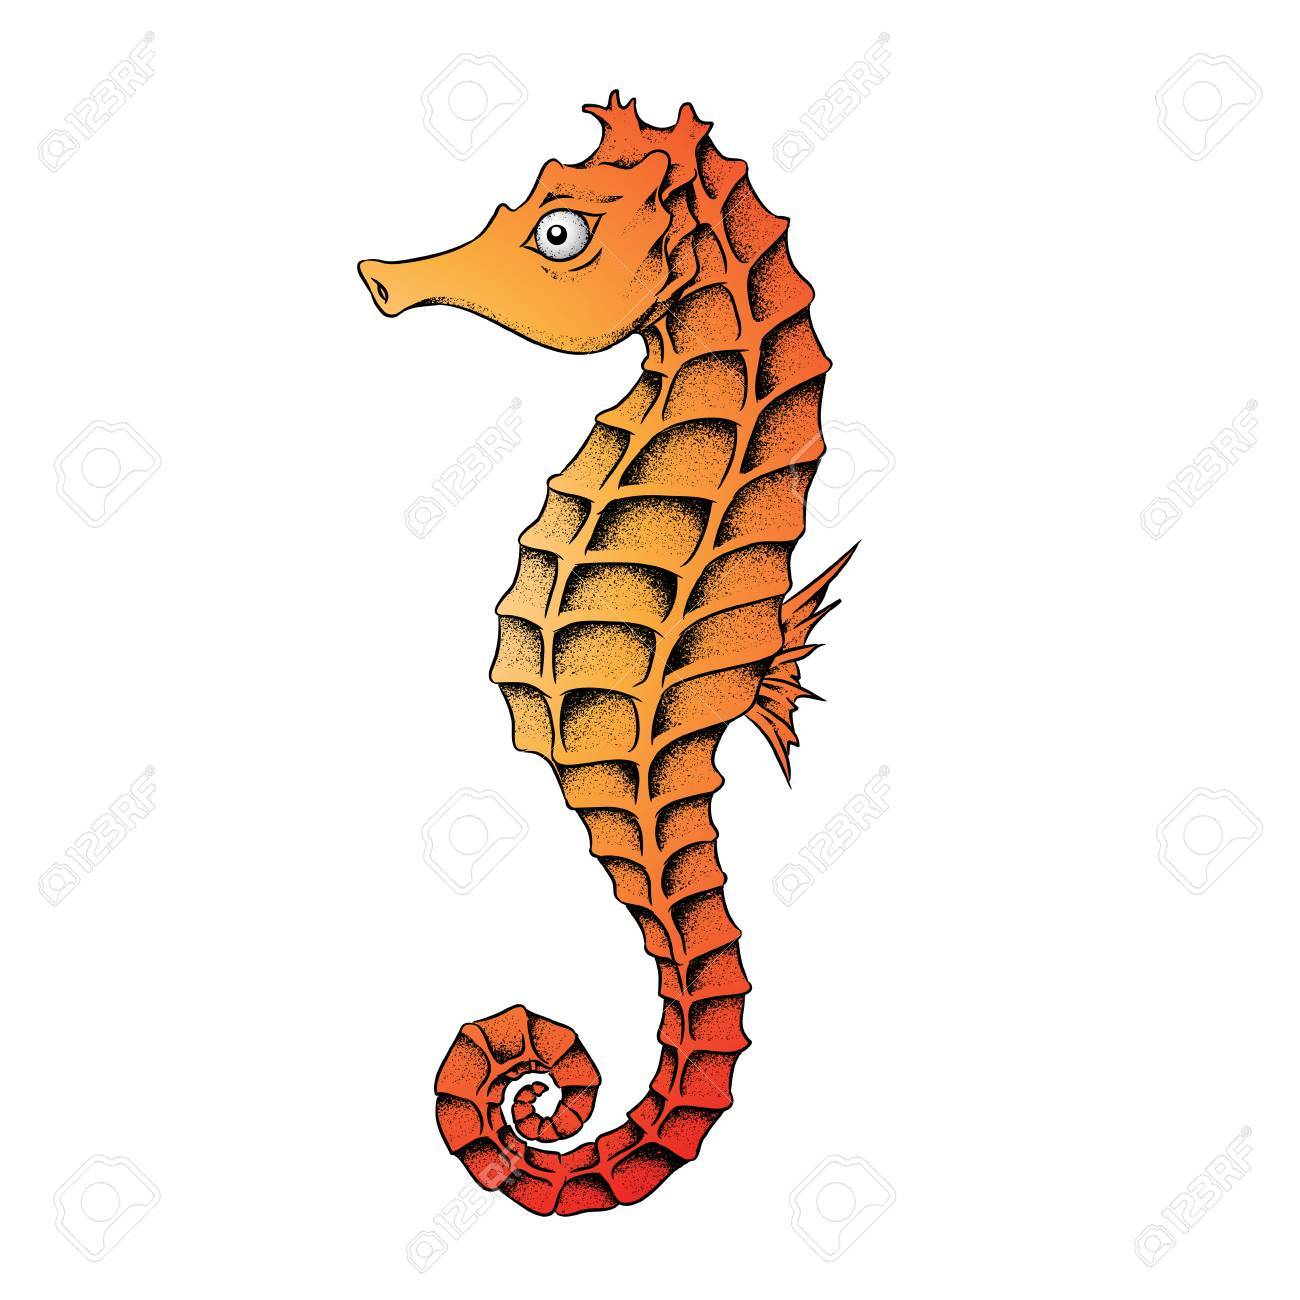 vector illustration of a seahorse isolated on a white background rh 123rf com seahorse vector png seahorse vector free